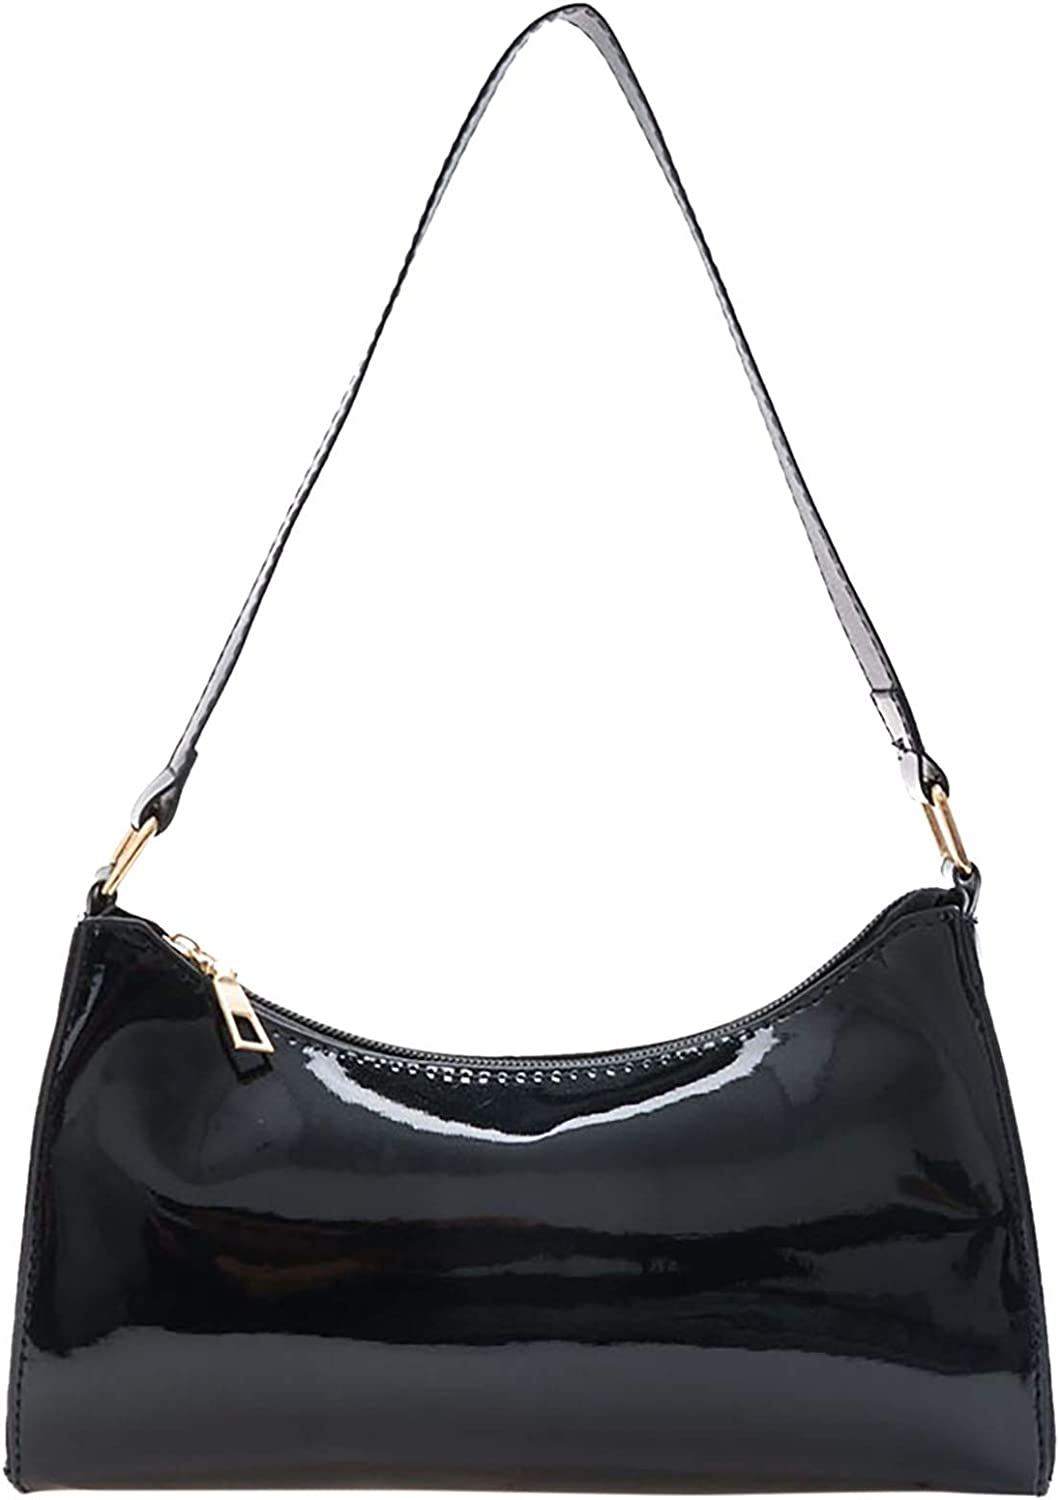 KEJINKCSEE Messenger Bags for Women Handle Top Fashion Tote Surprise Quality inspection price